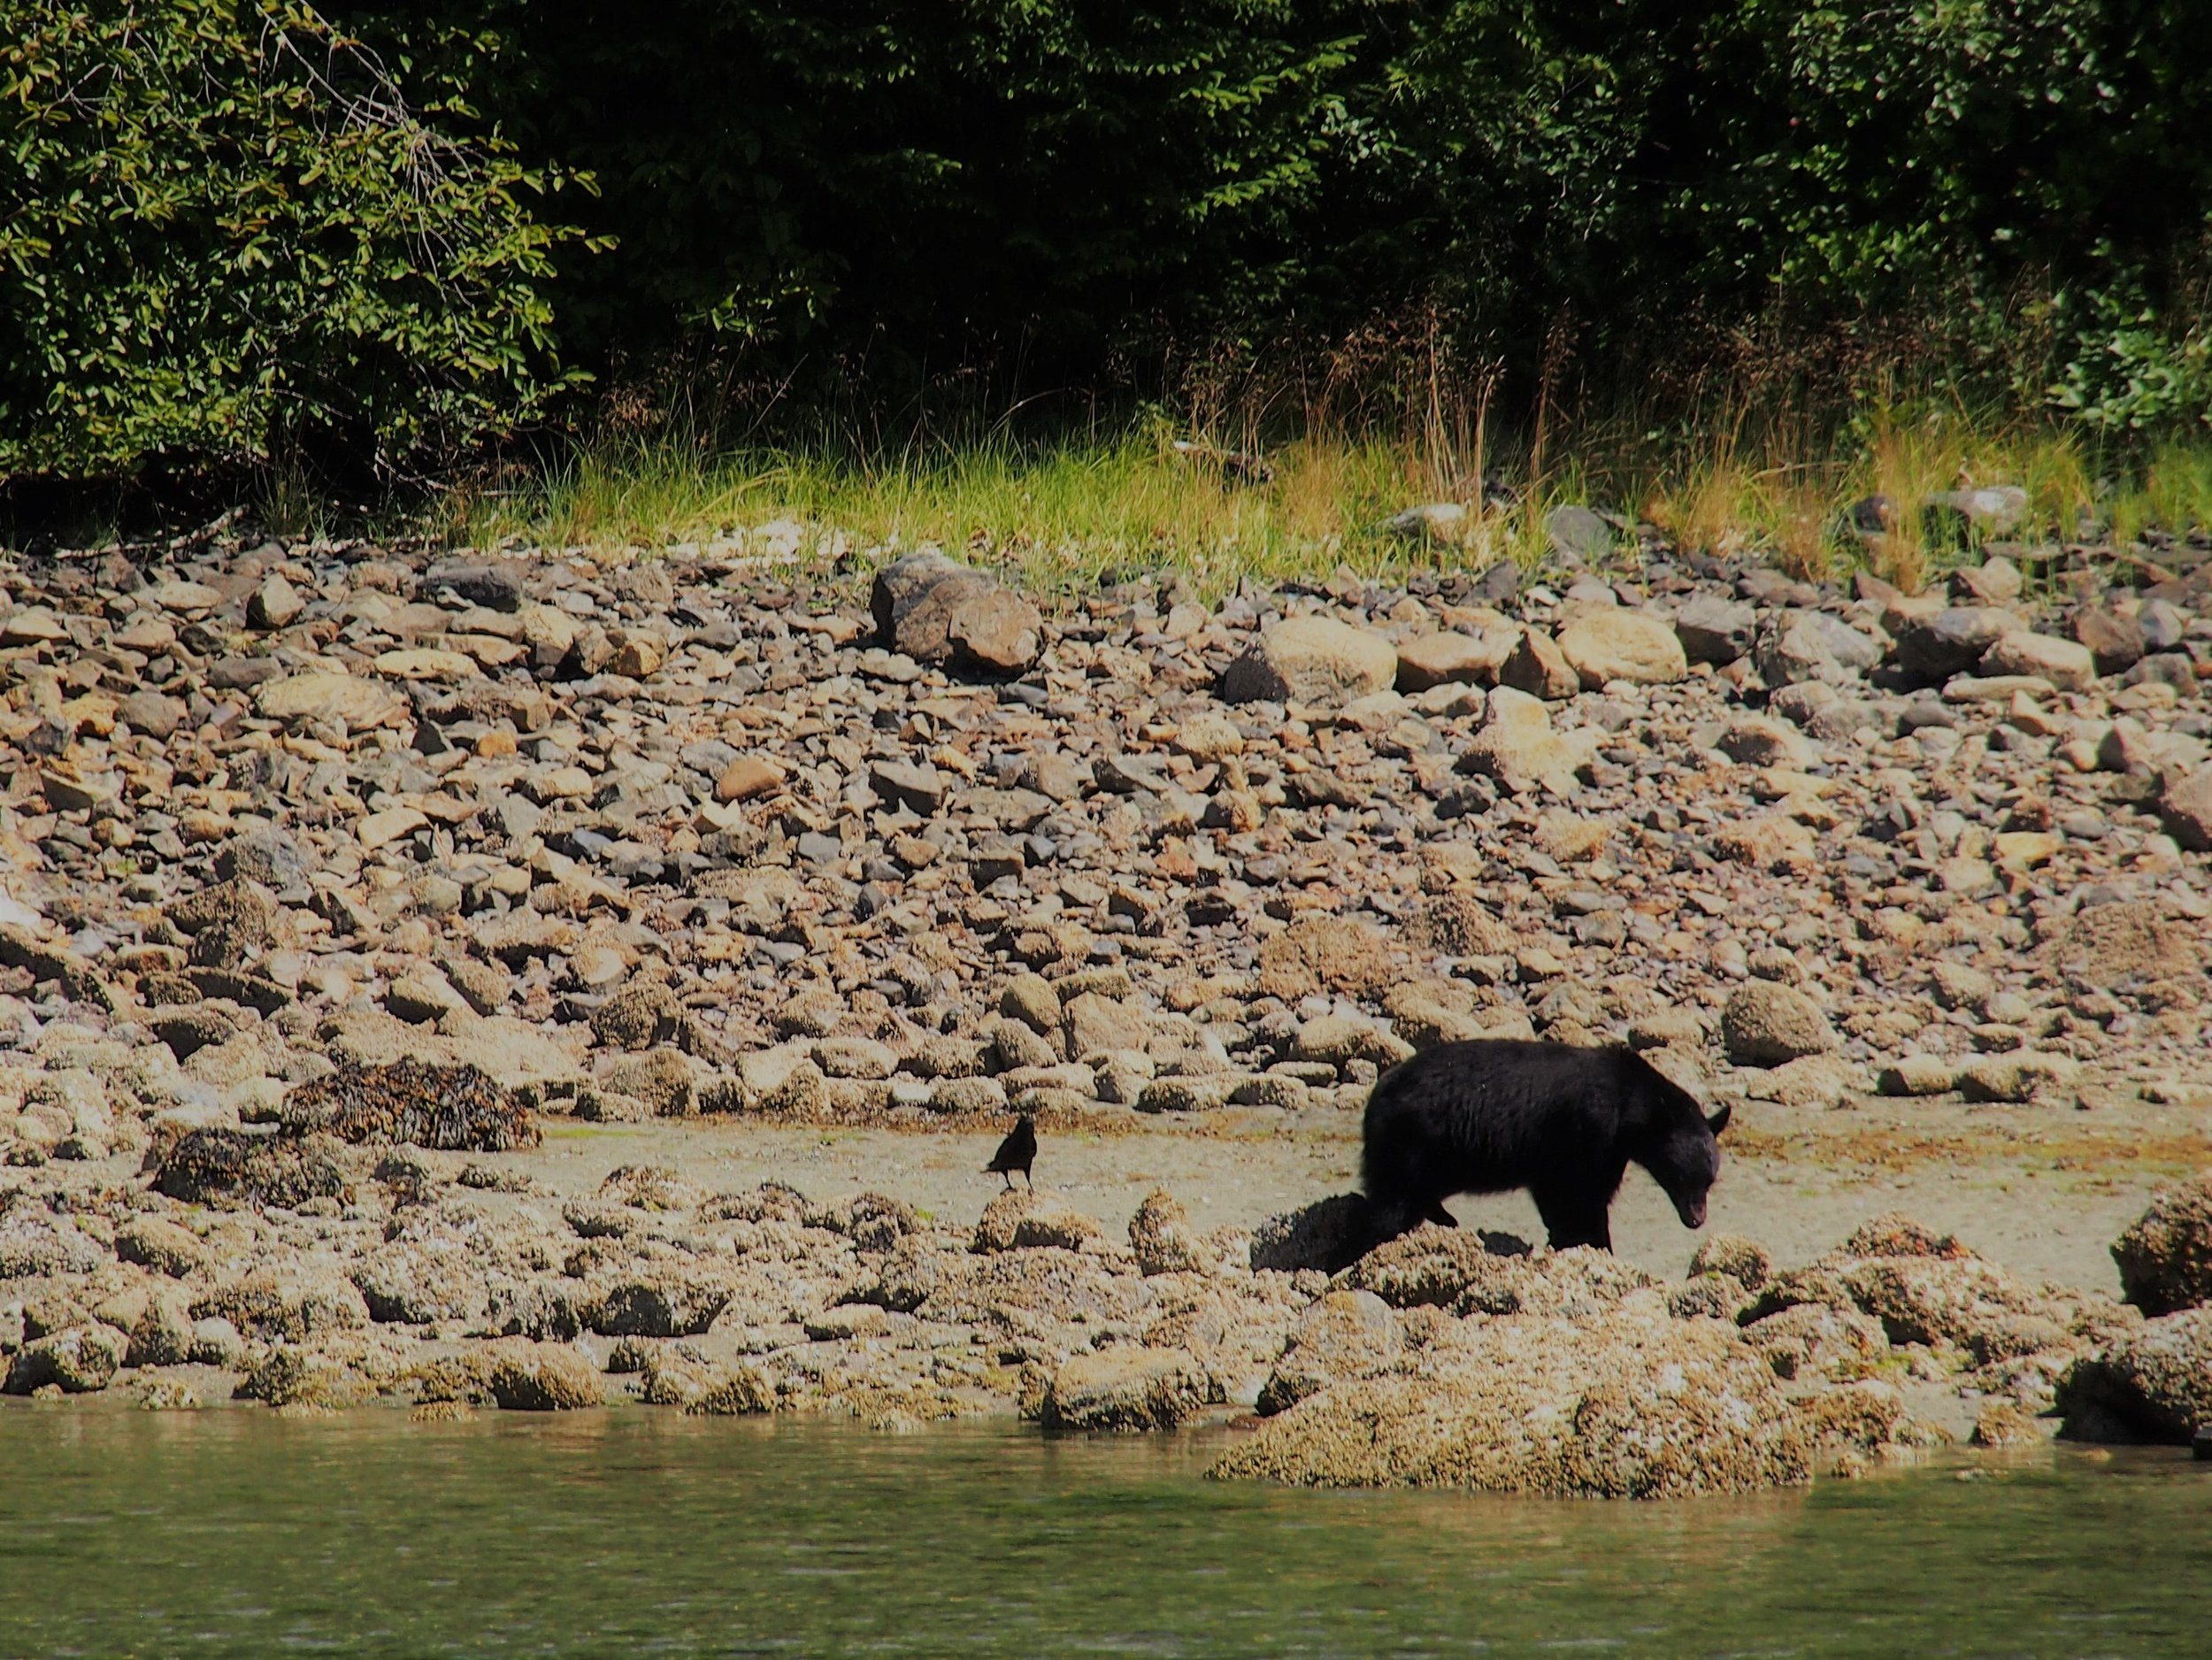 Black bear noshing with crow on beach crabs